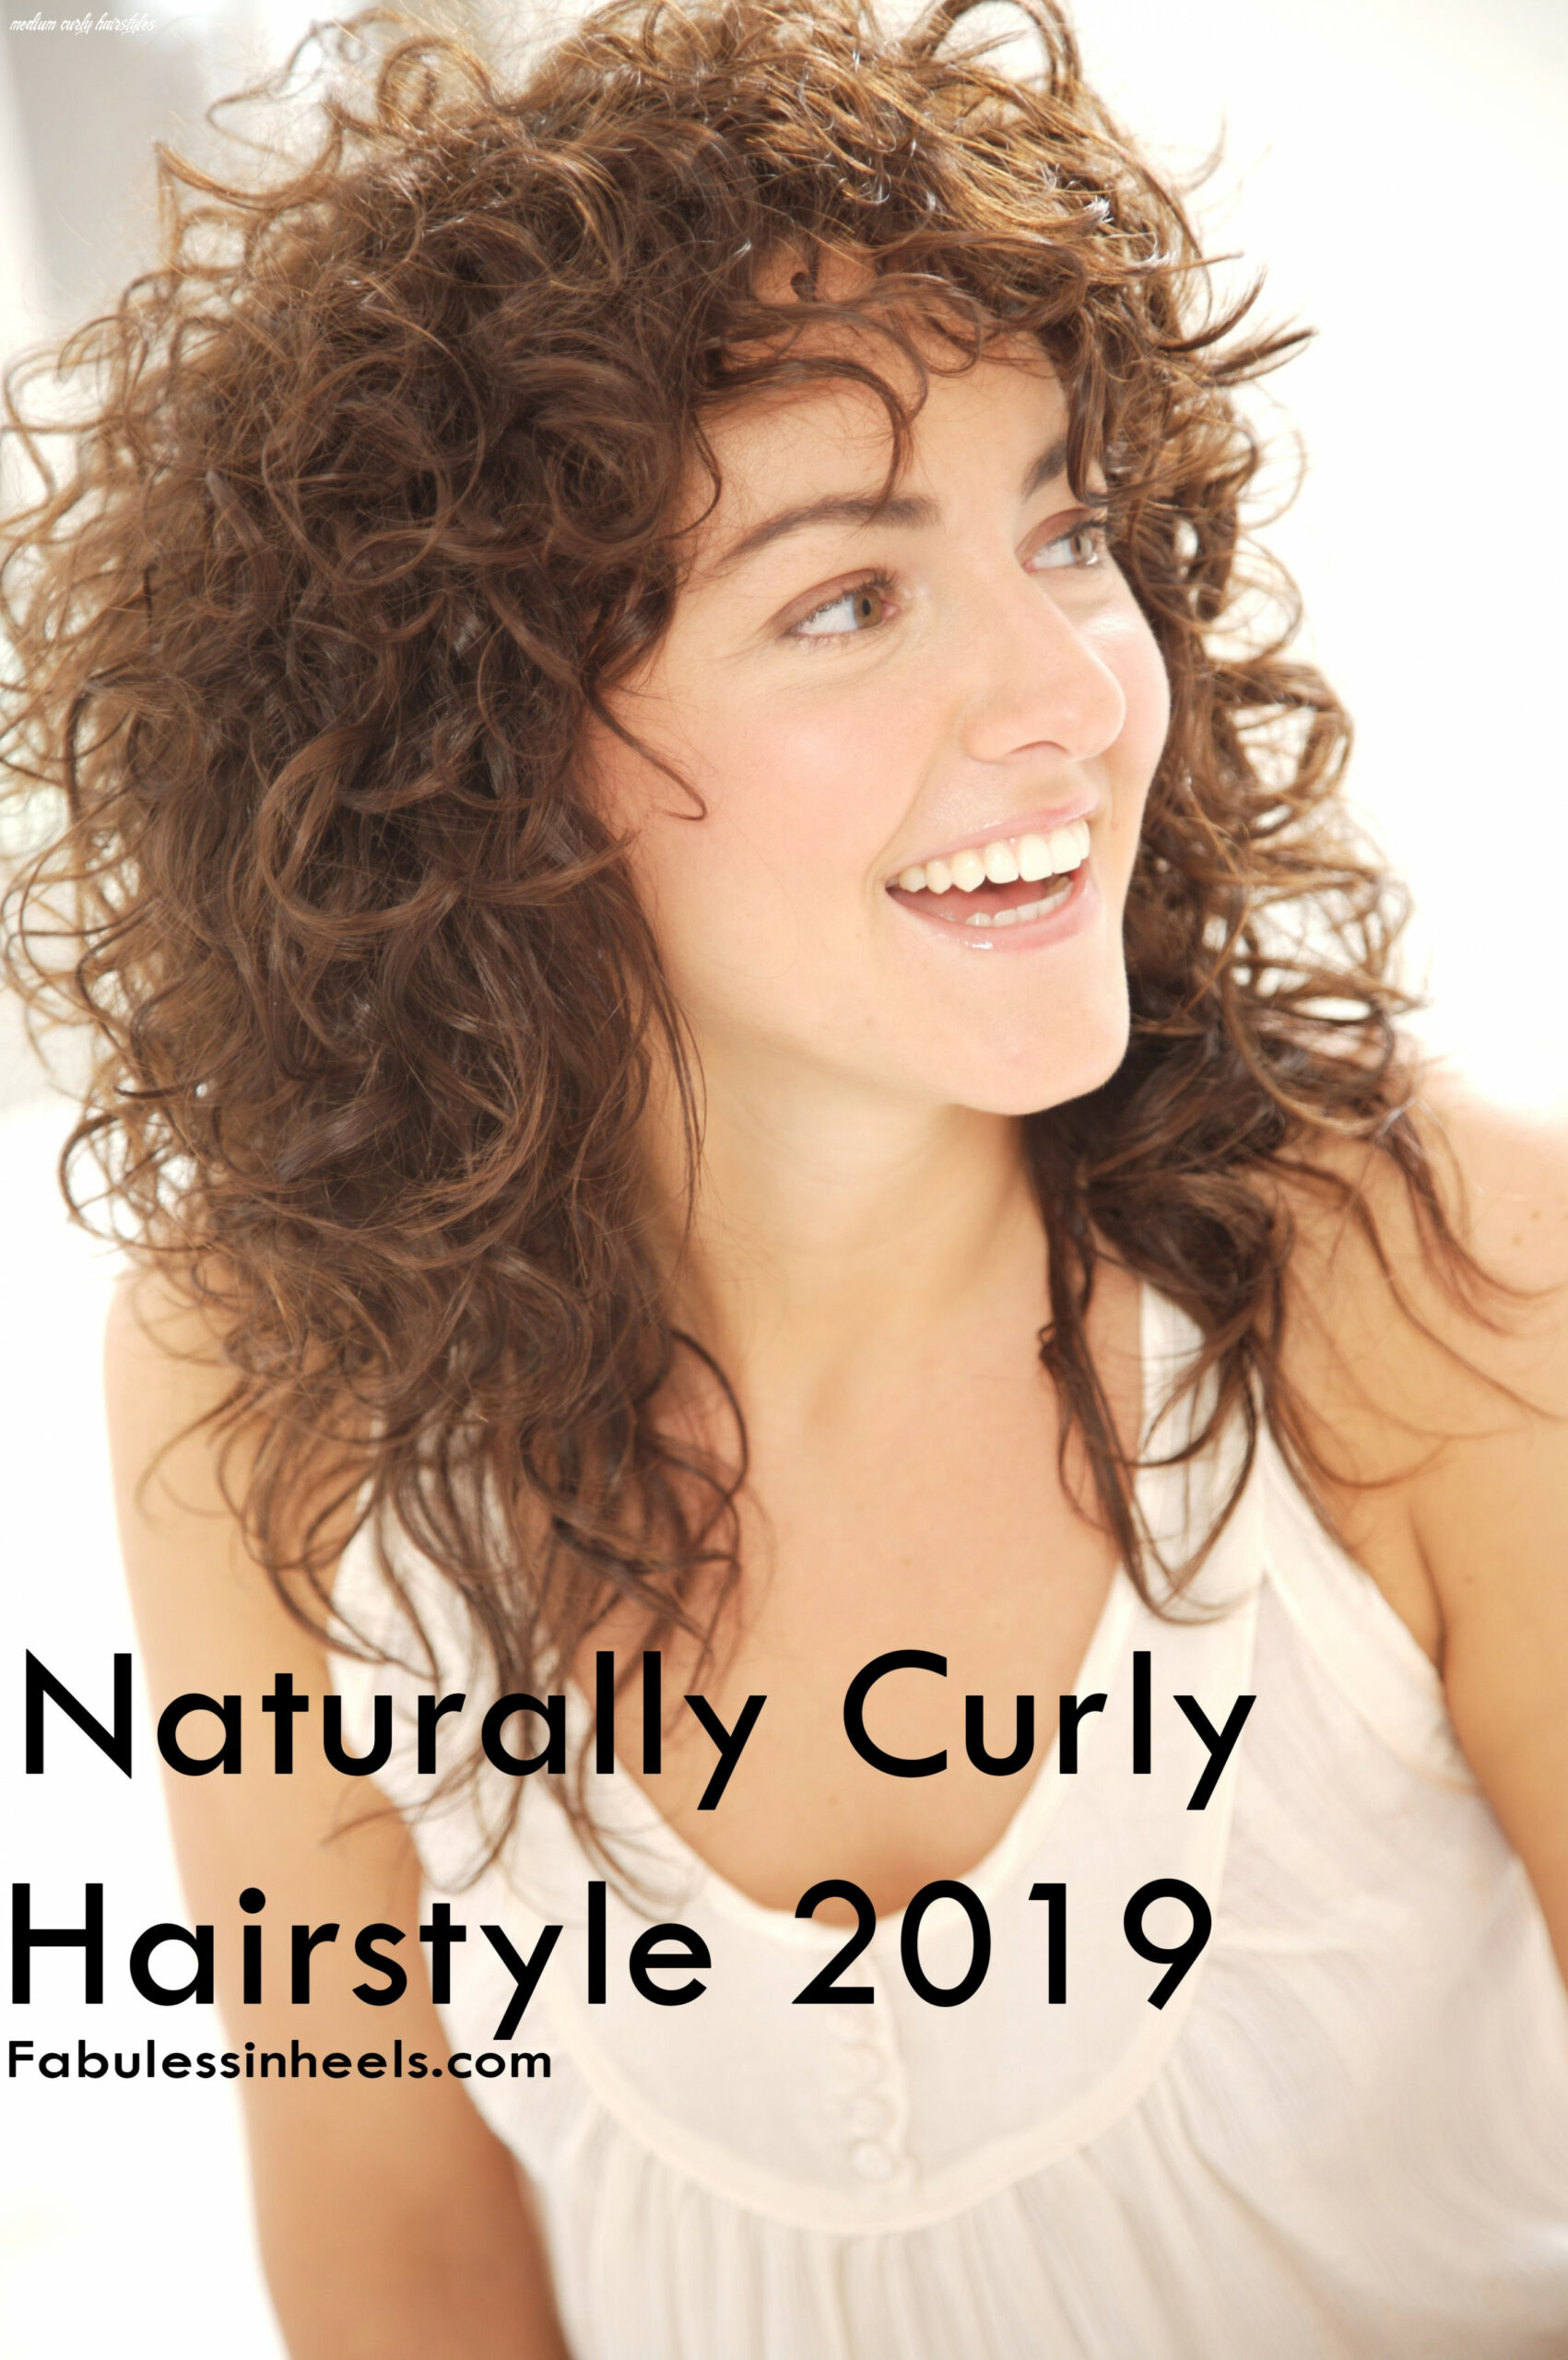 Naturally curly hair 11 for womens with medium length #hairstyle